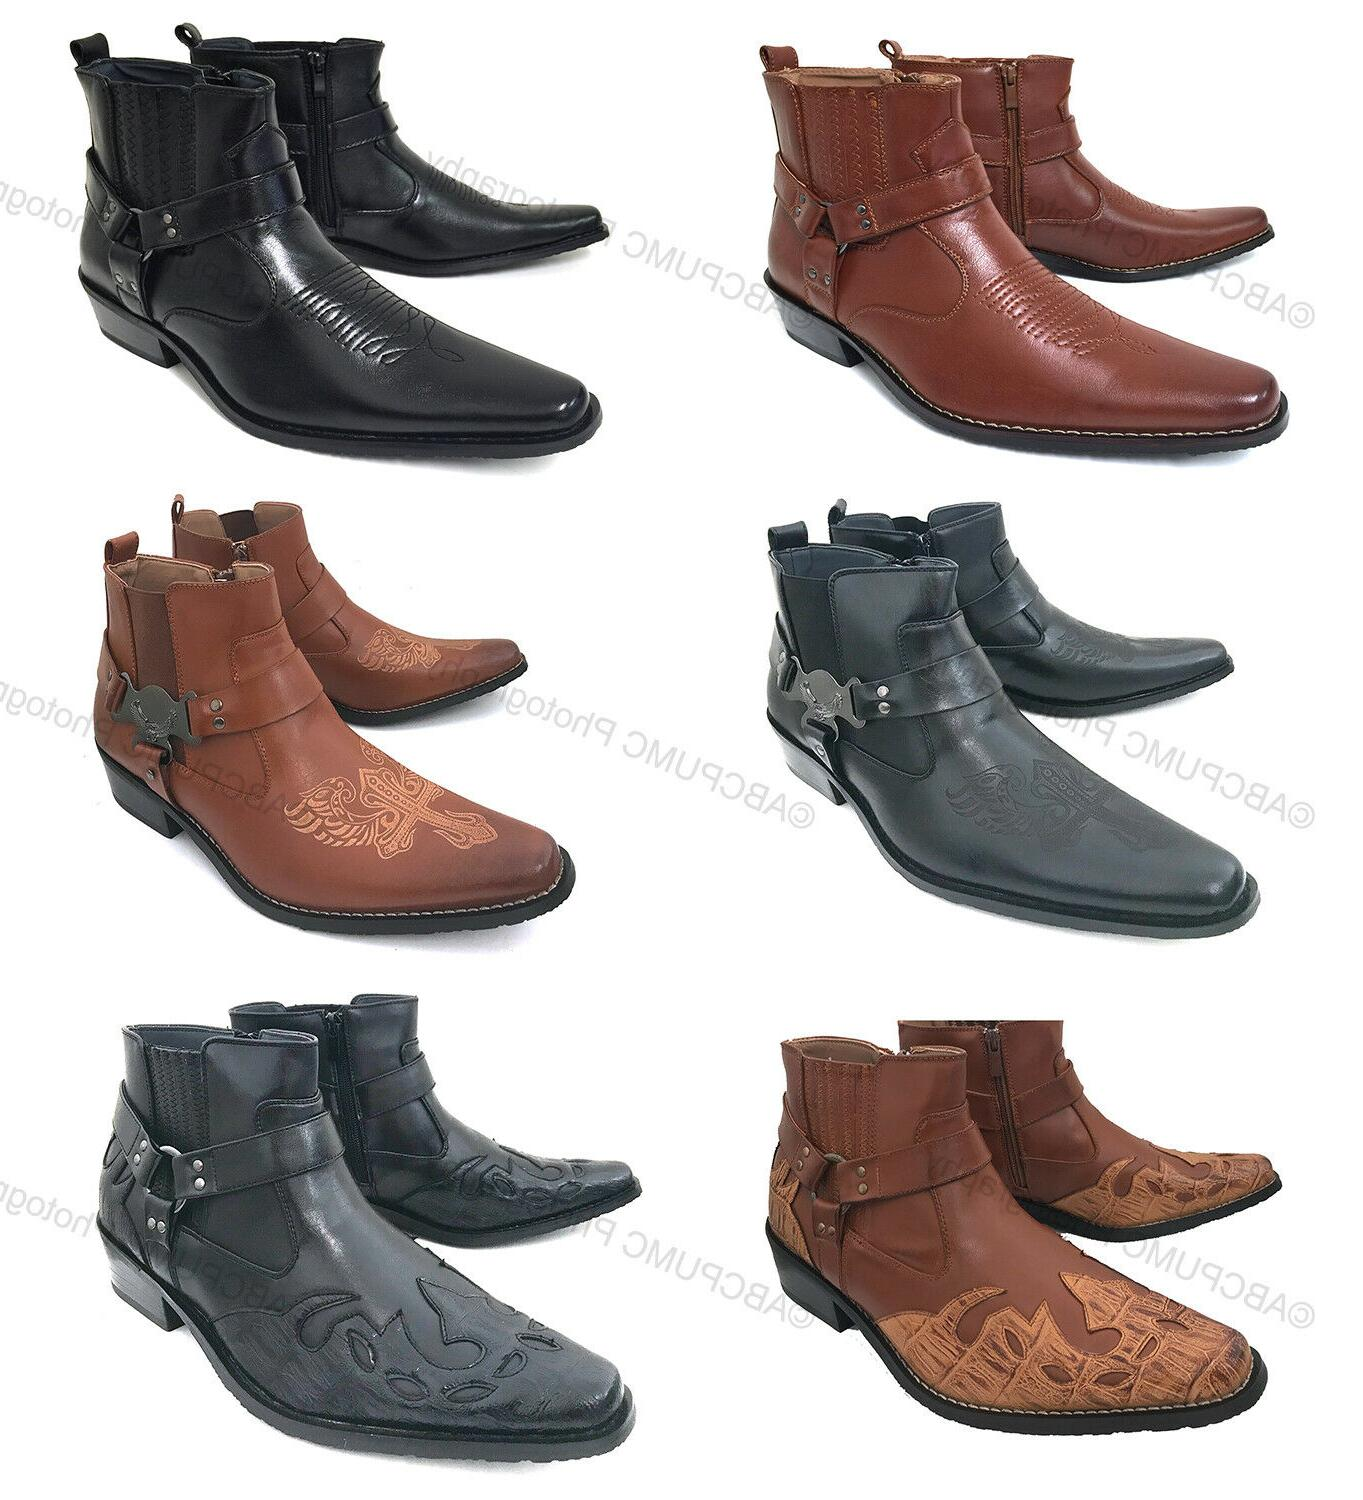 mens cowboy boots western leather lined ankle